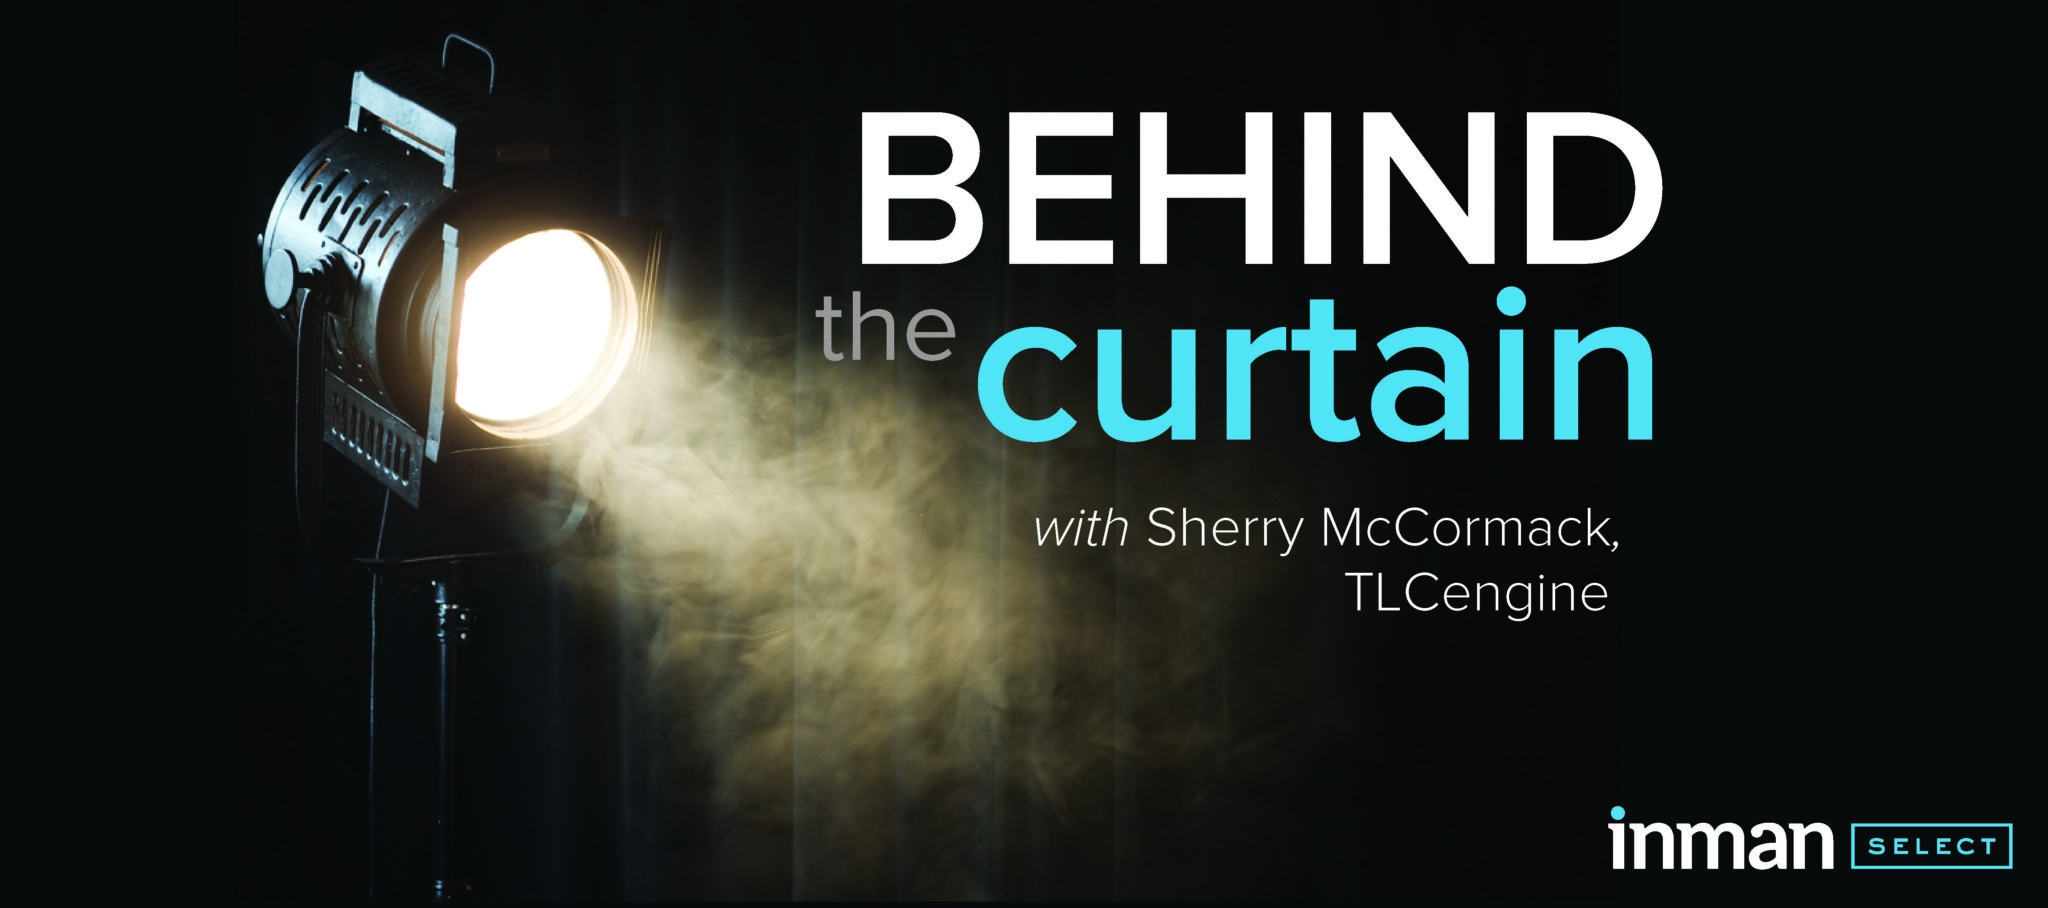 Sherry McCormack: 'The more techy we become, the more there's a need for authenticity'